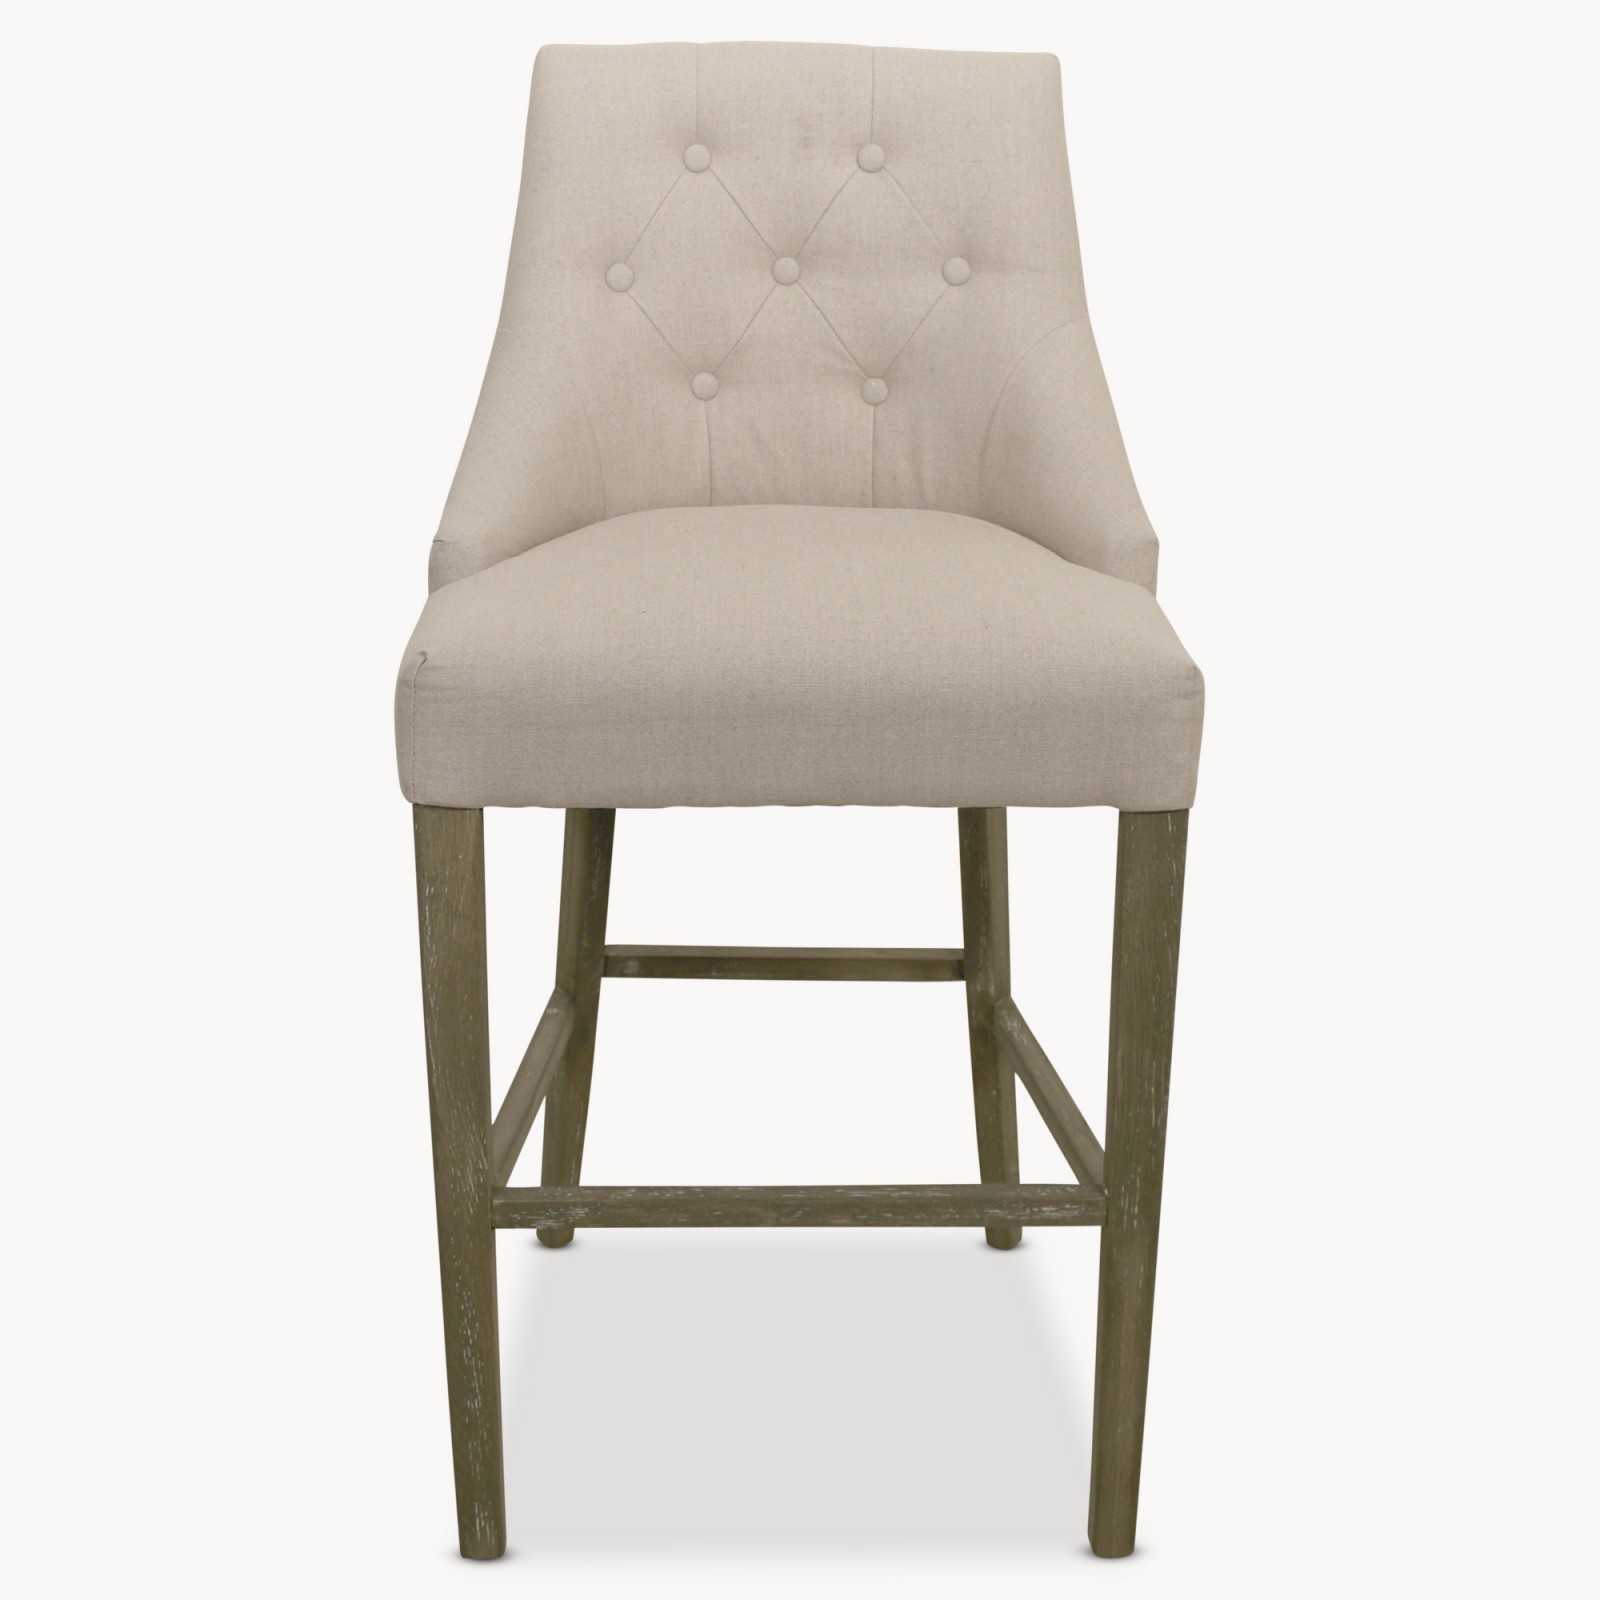 Padded Stool St James Natural Padded Bar Stool Hadley Rose